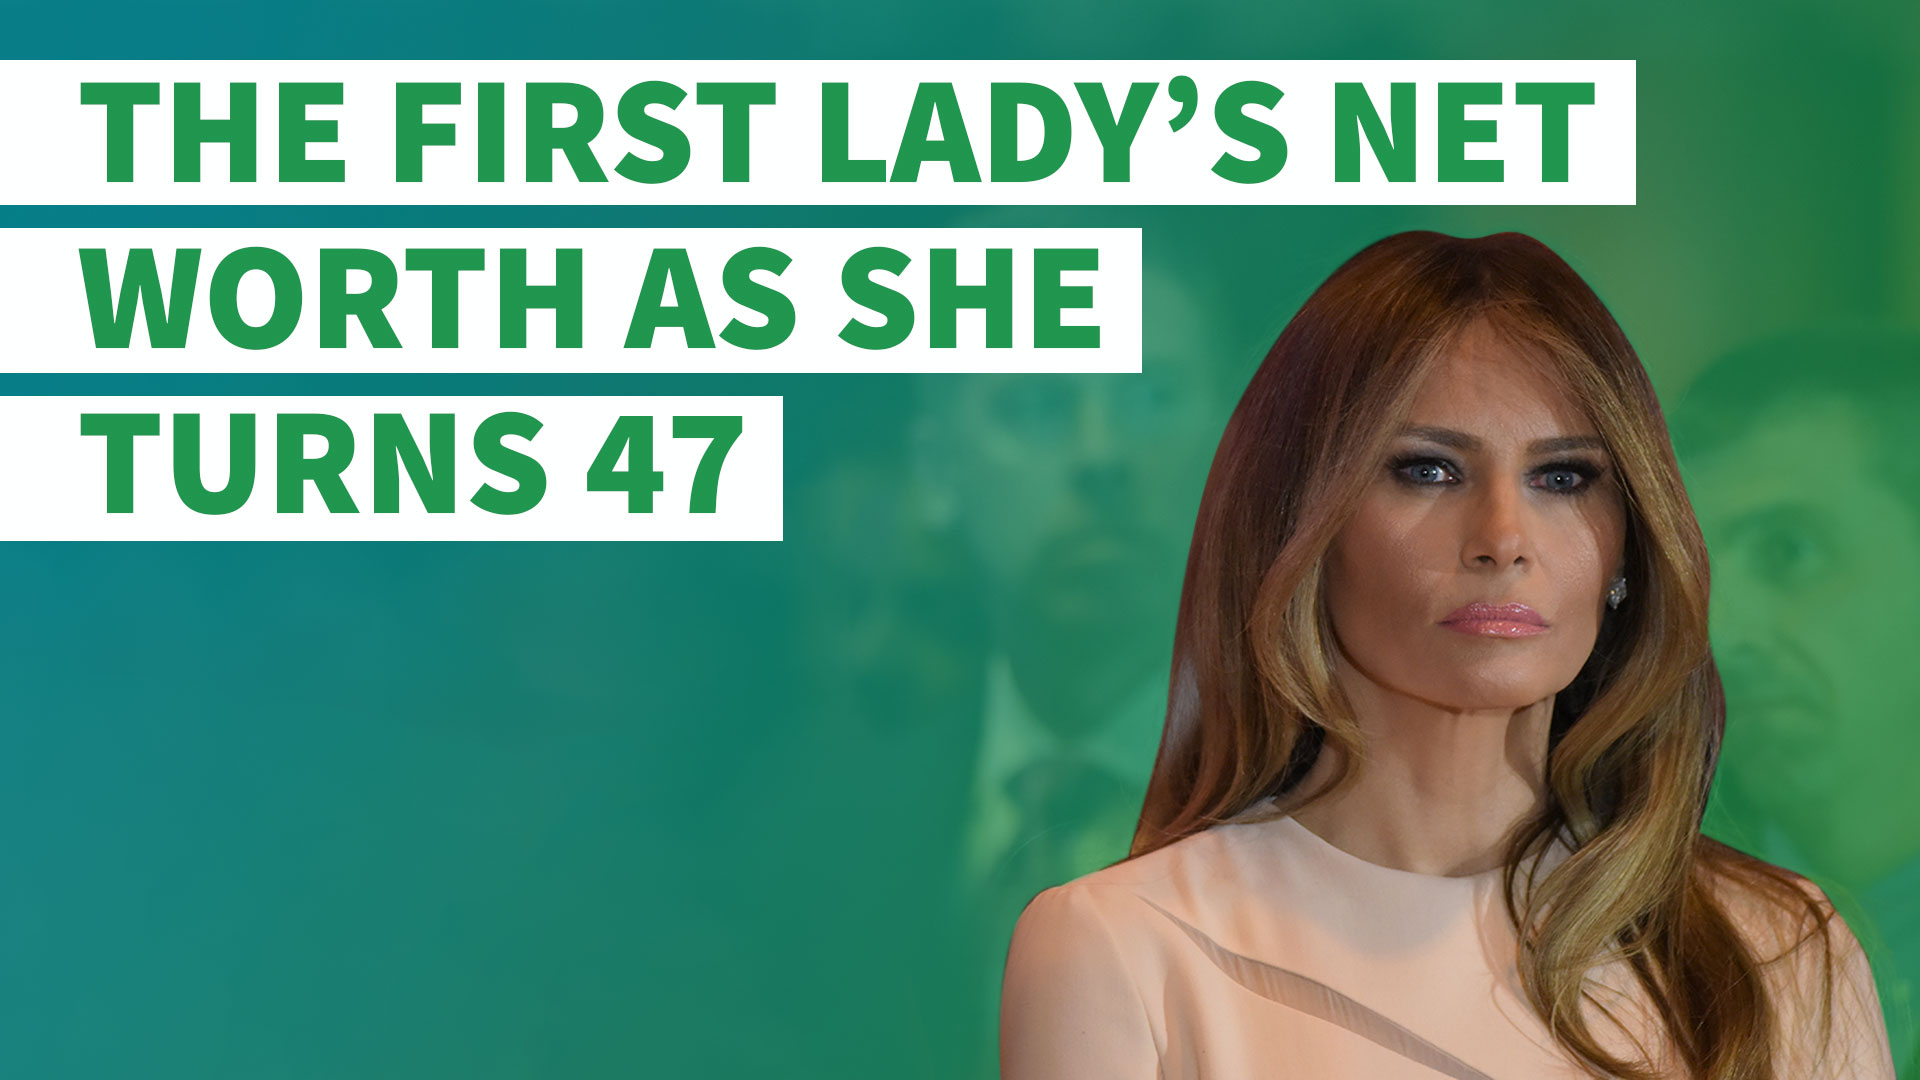 Credit Report Companies >> Happy Birthday Melania Trump: The First Lady's Net Worth as She Turns 48 | GOBankingRates